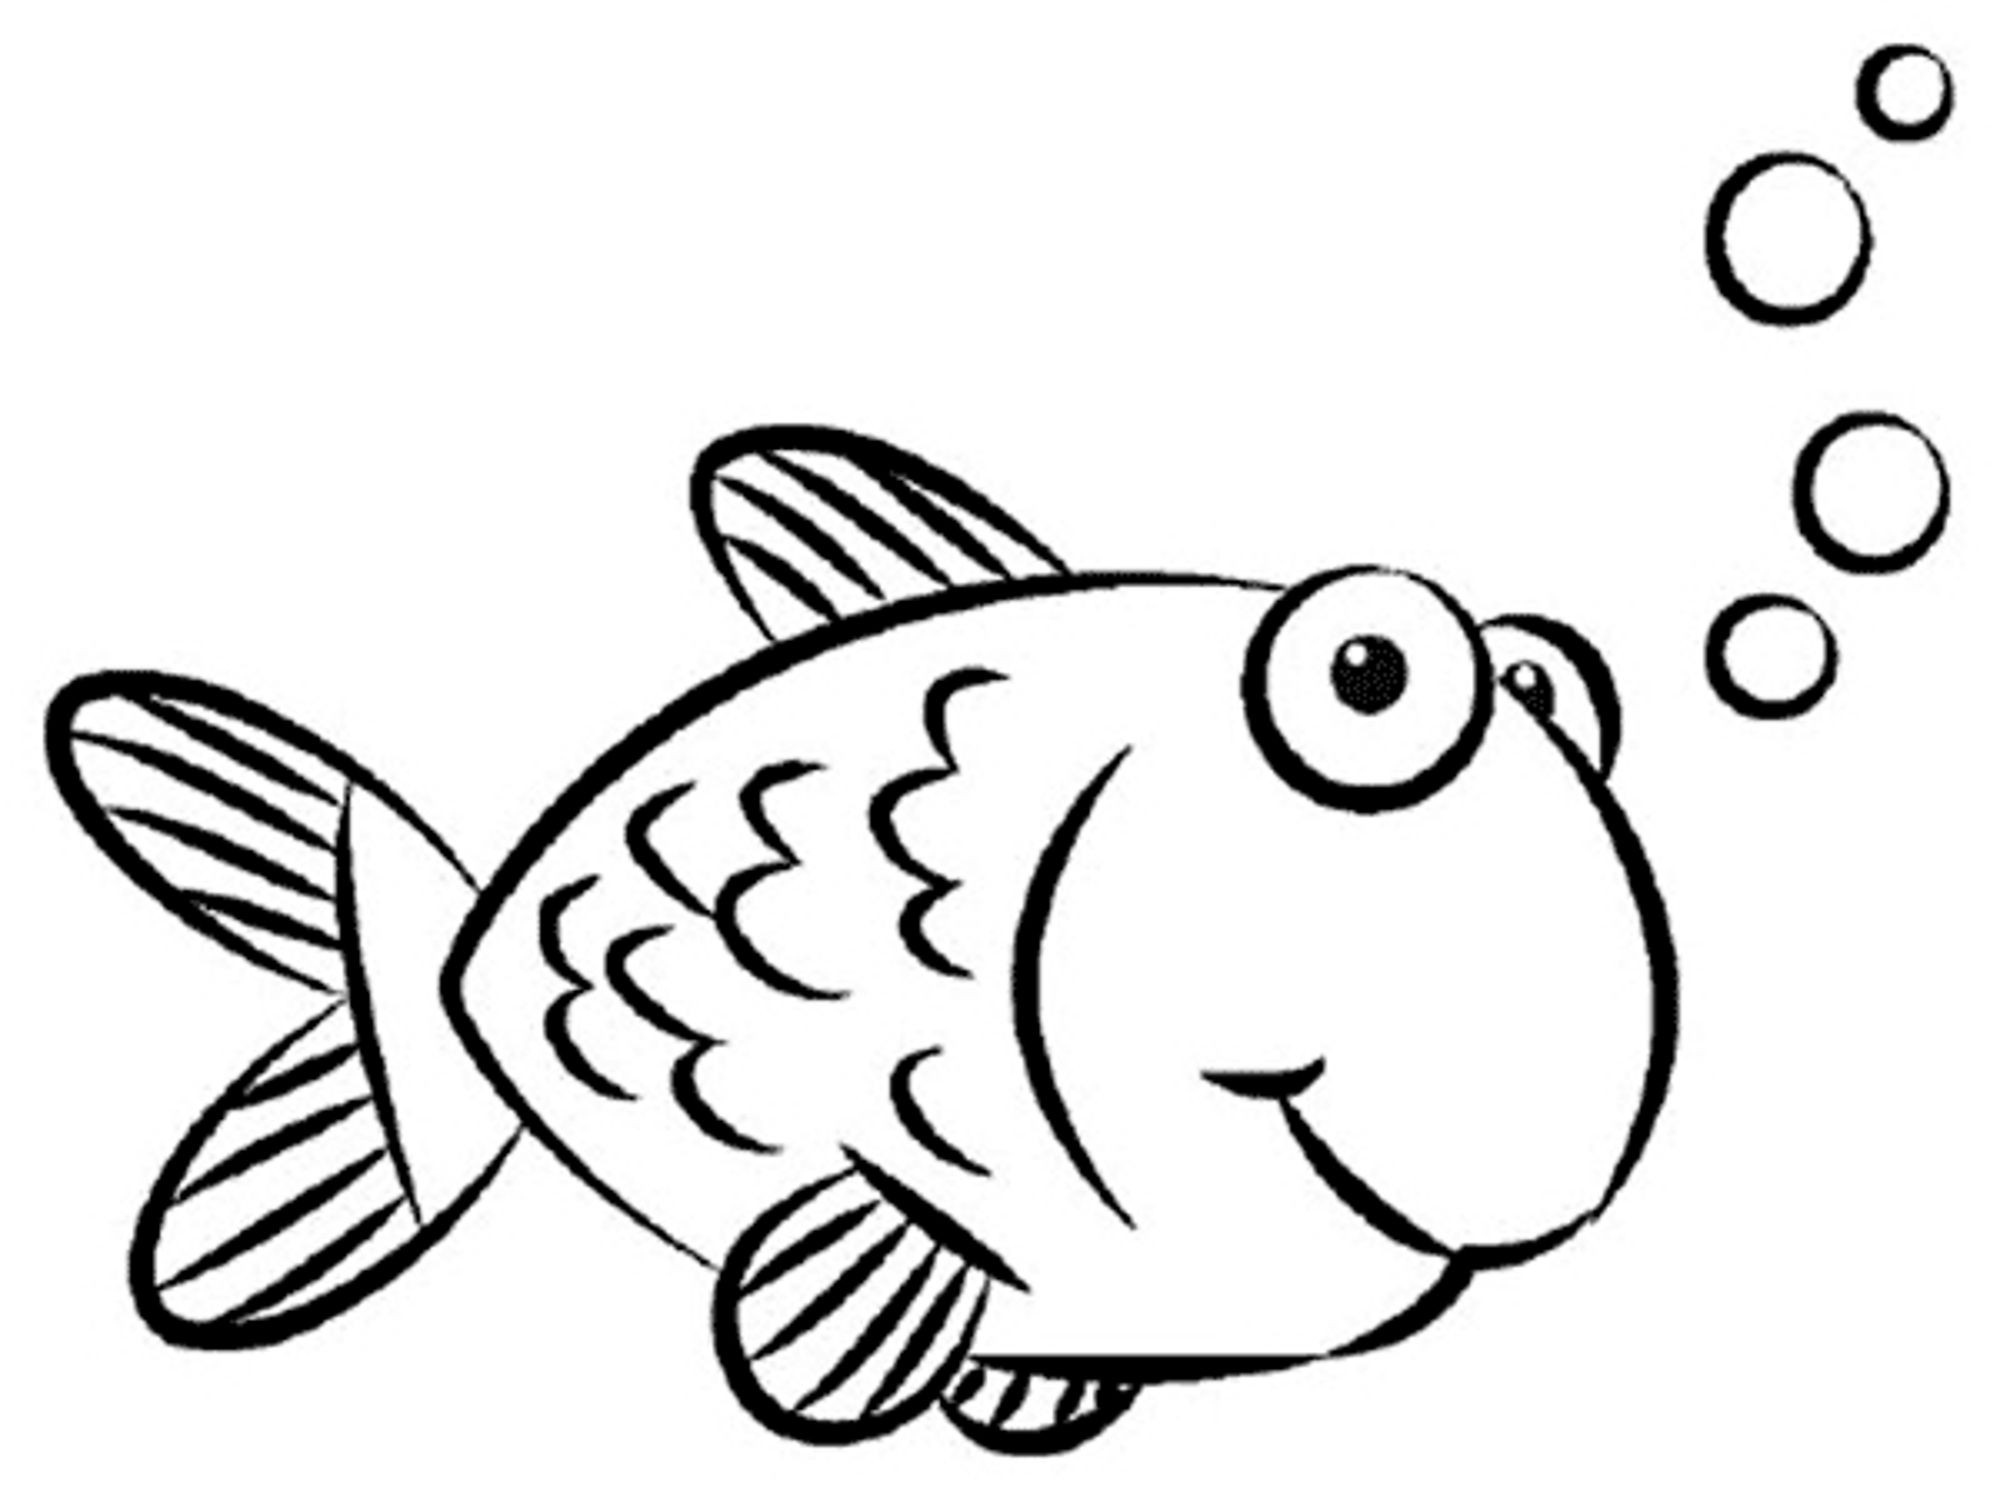 2000x1510 Fish Coloring Page Beautiful Fish Coloring Pages For Kids